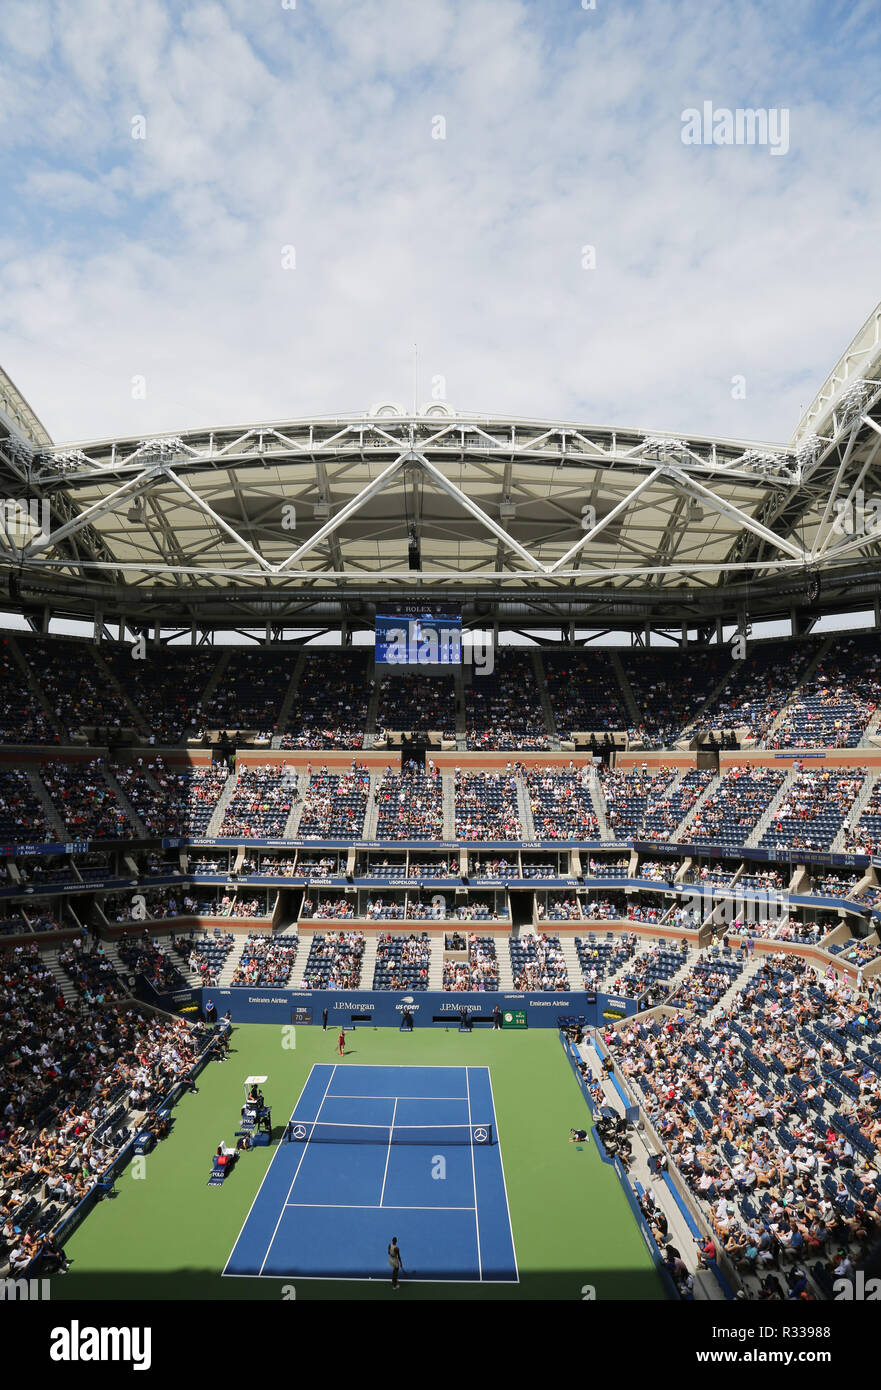 Arthur Ashe Stadium at the Billie Jean King National Tennis Center during 2018 US Open tournament in New York - Stock Image